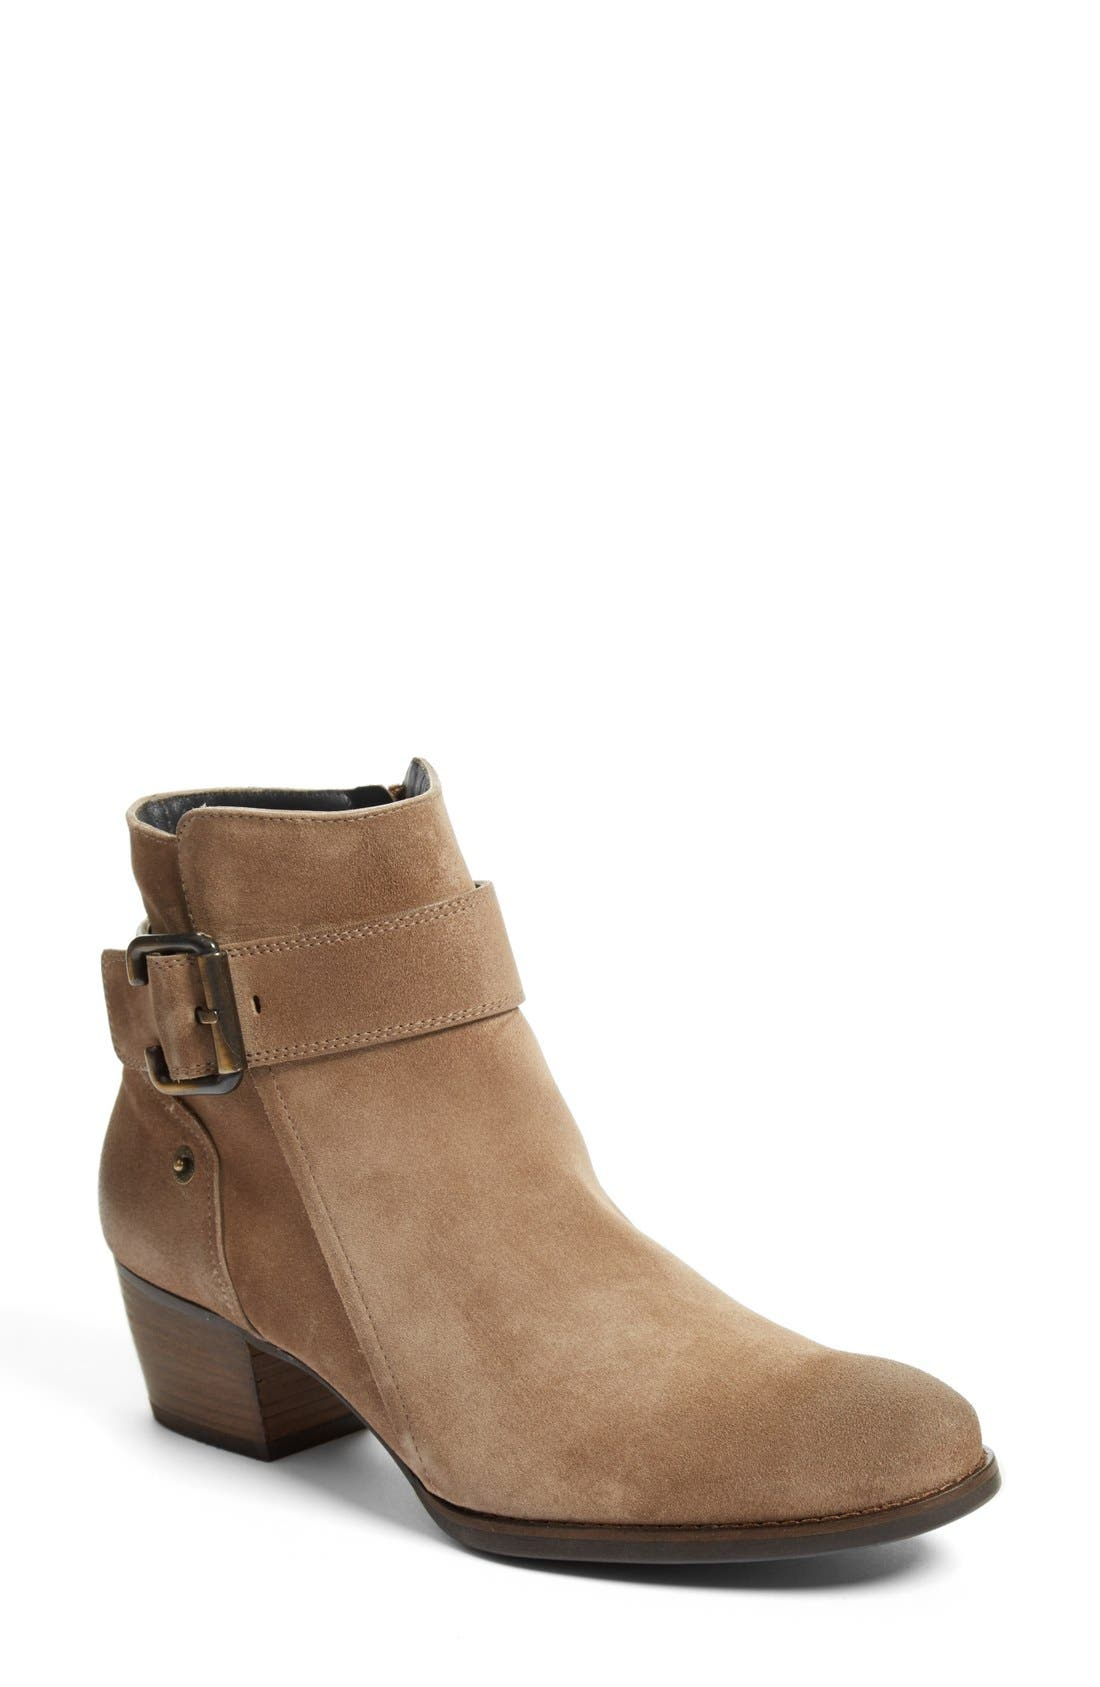 Main Image - Paul Green 'Jano' Moto Bootie (Women)